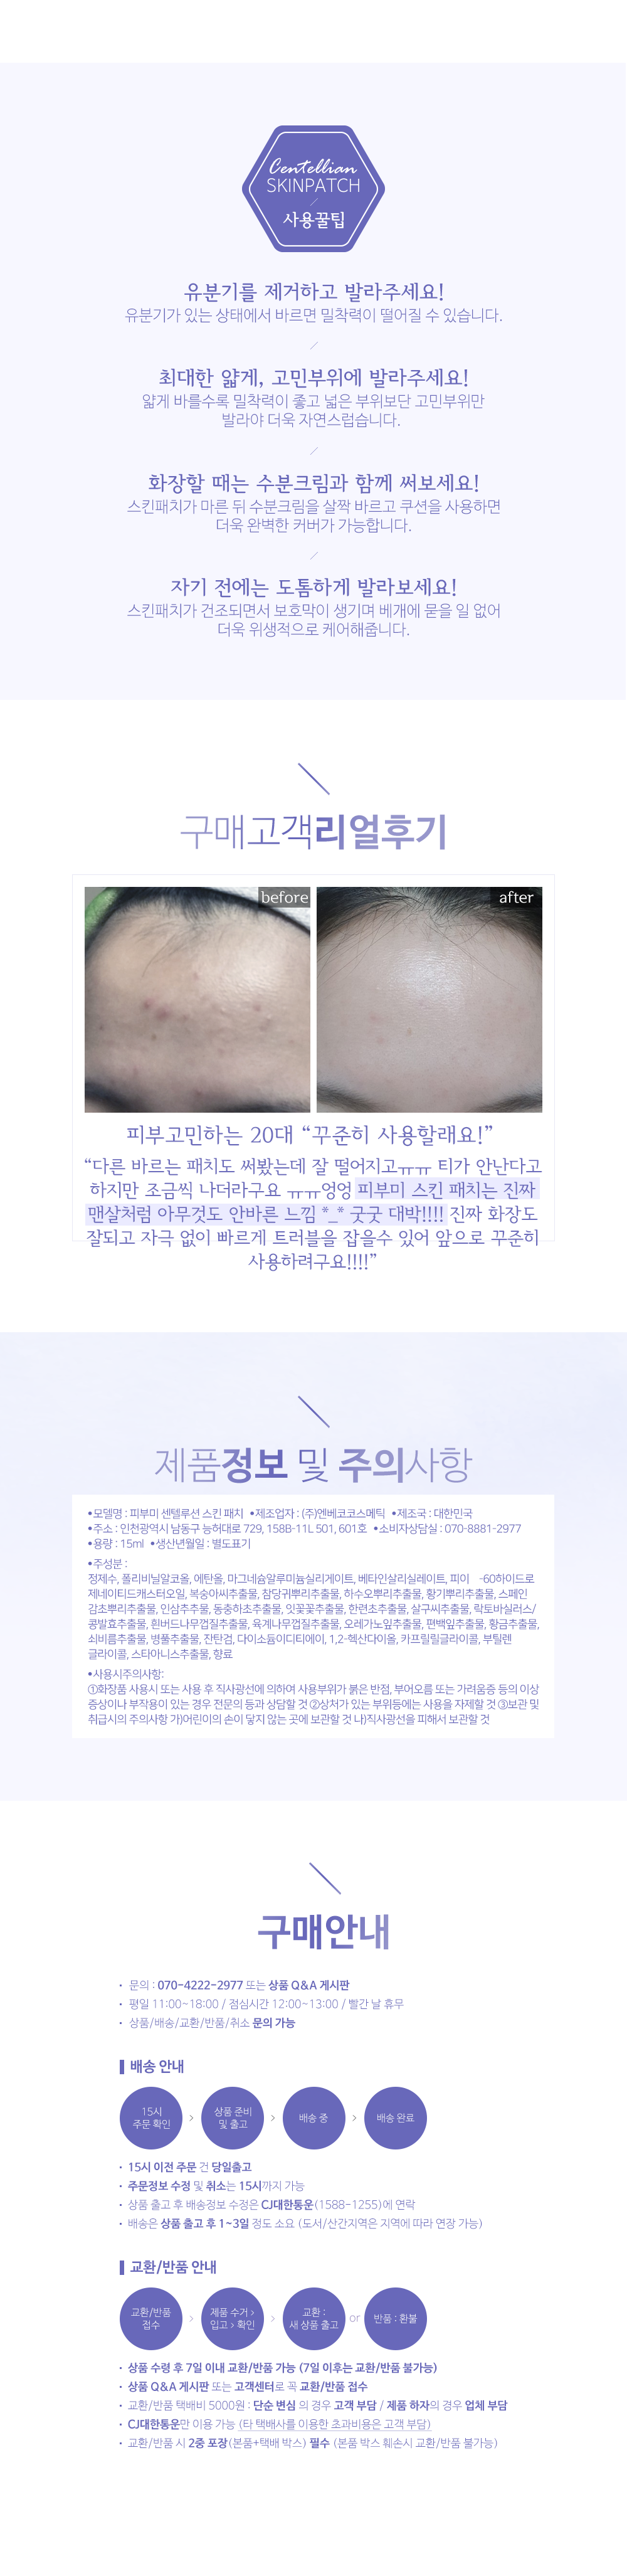 new-skinpatch-web-05.png